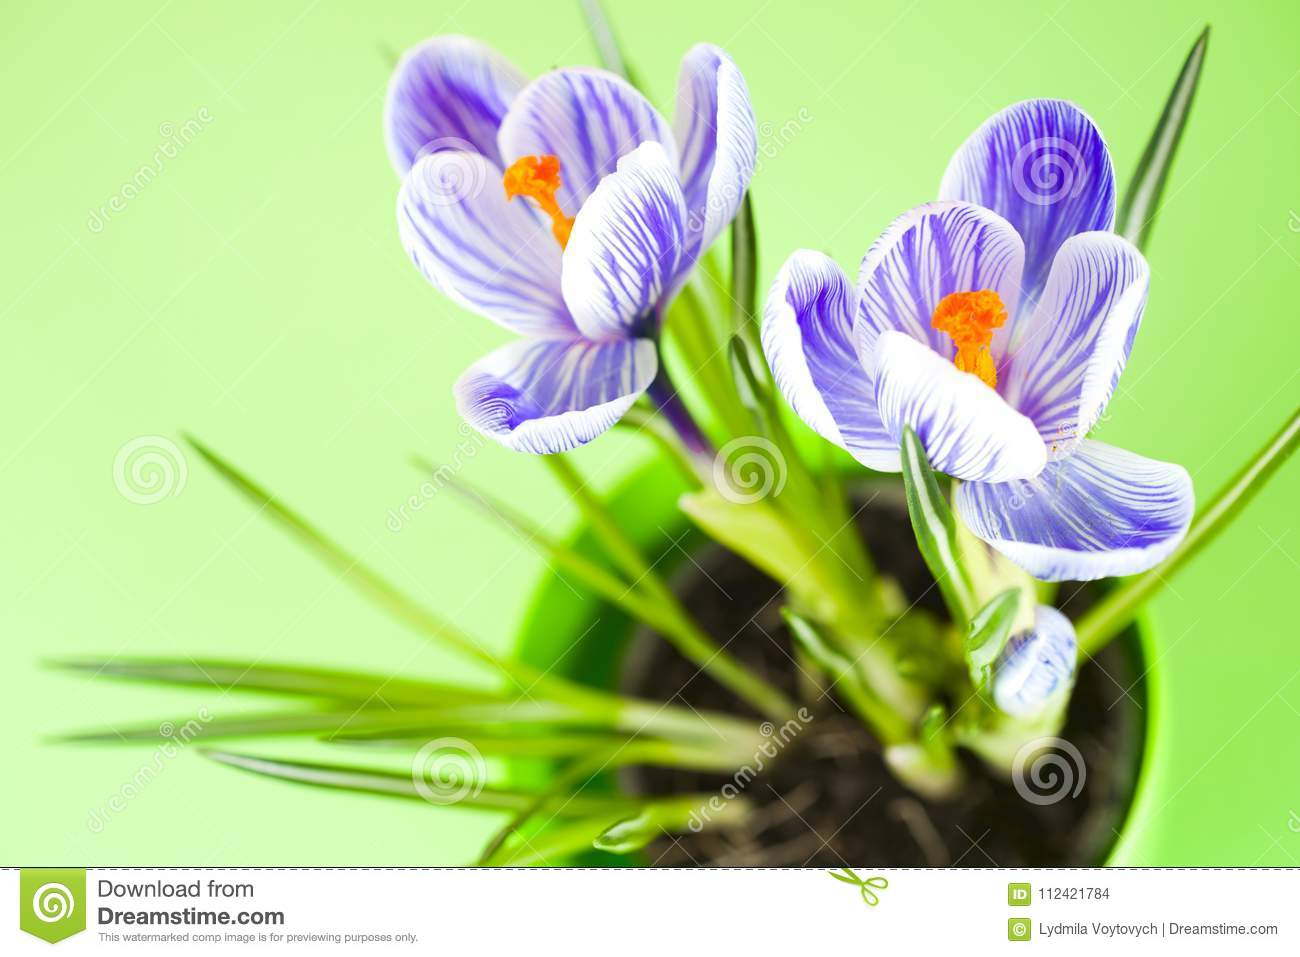 4c1e5415a8b1 Crocus on bright colorful background spring flowers bunch of flowers spring  flower bouquets flower and beautiful